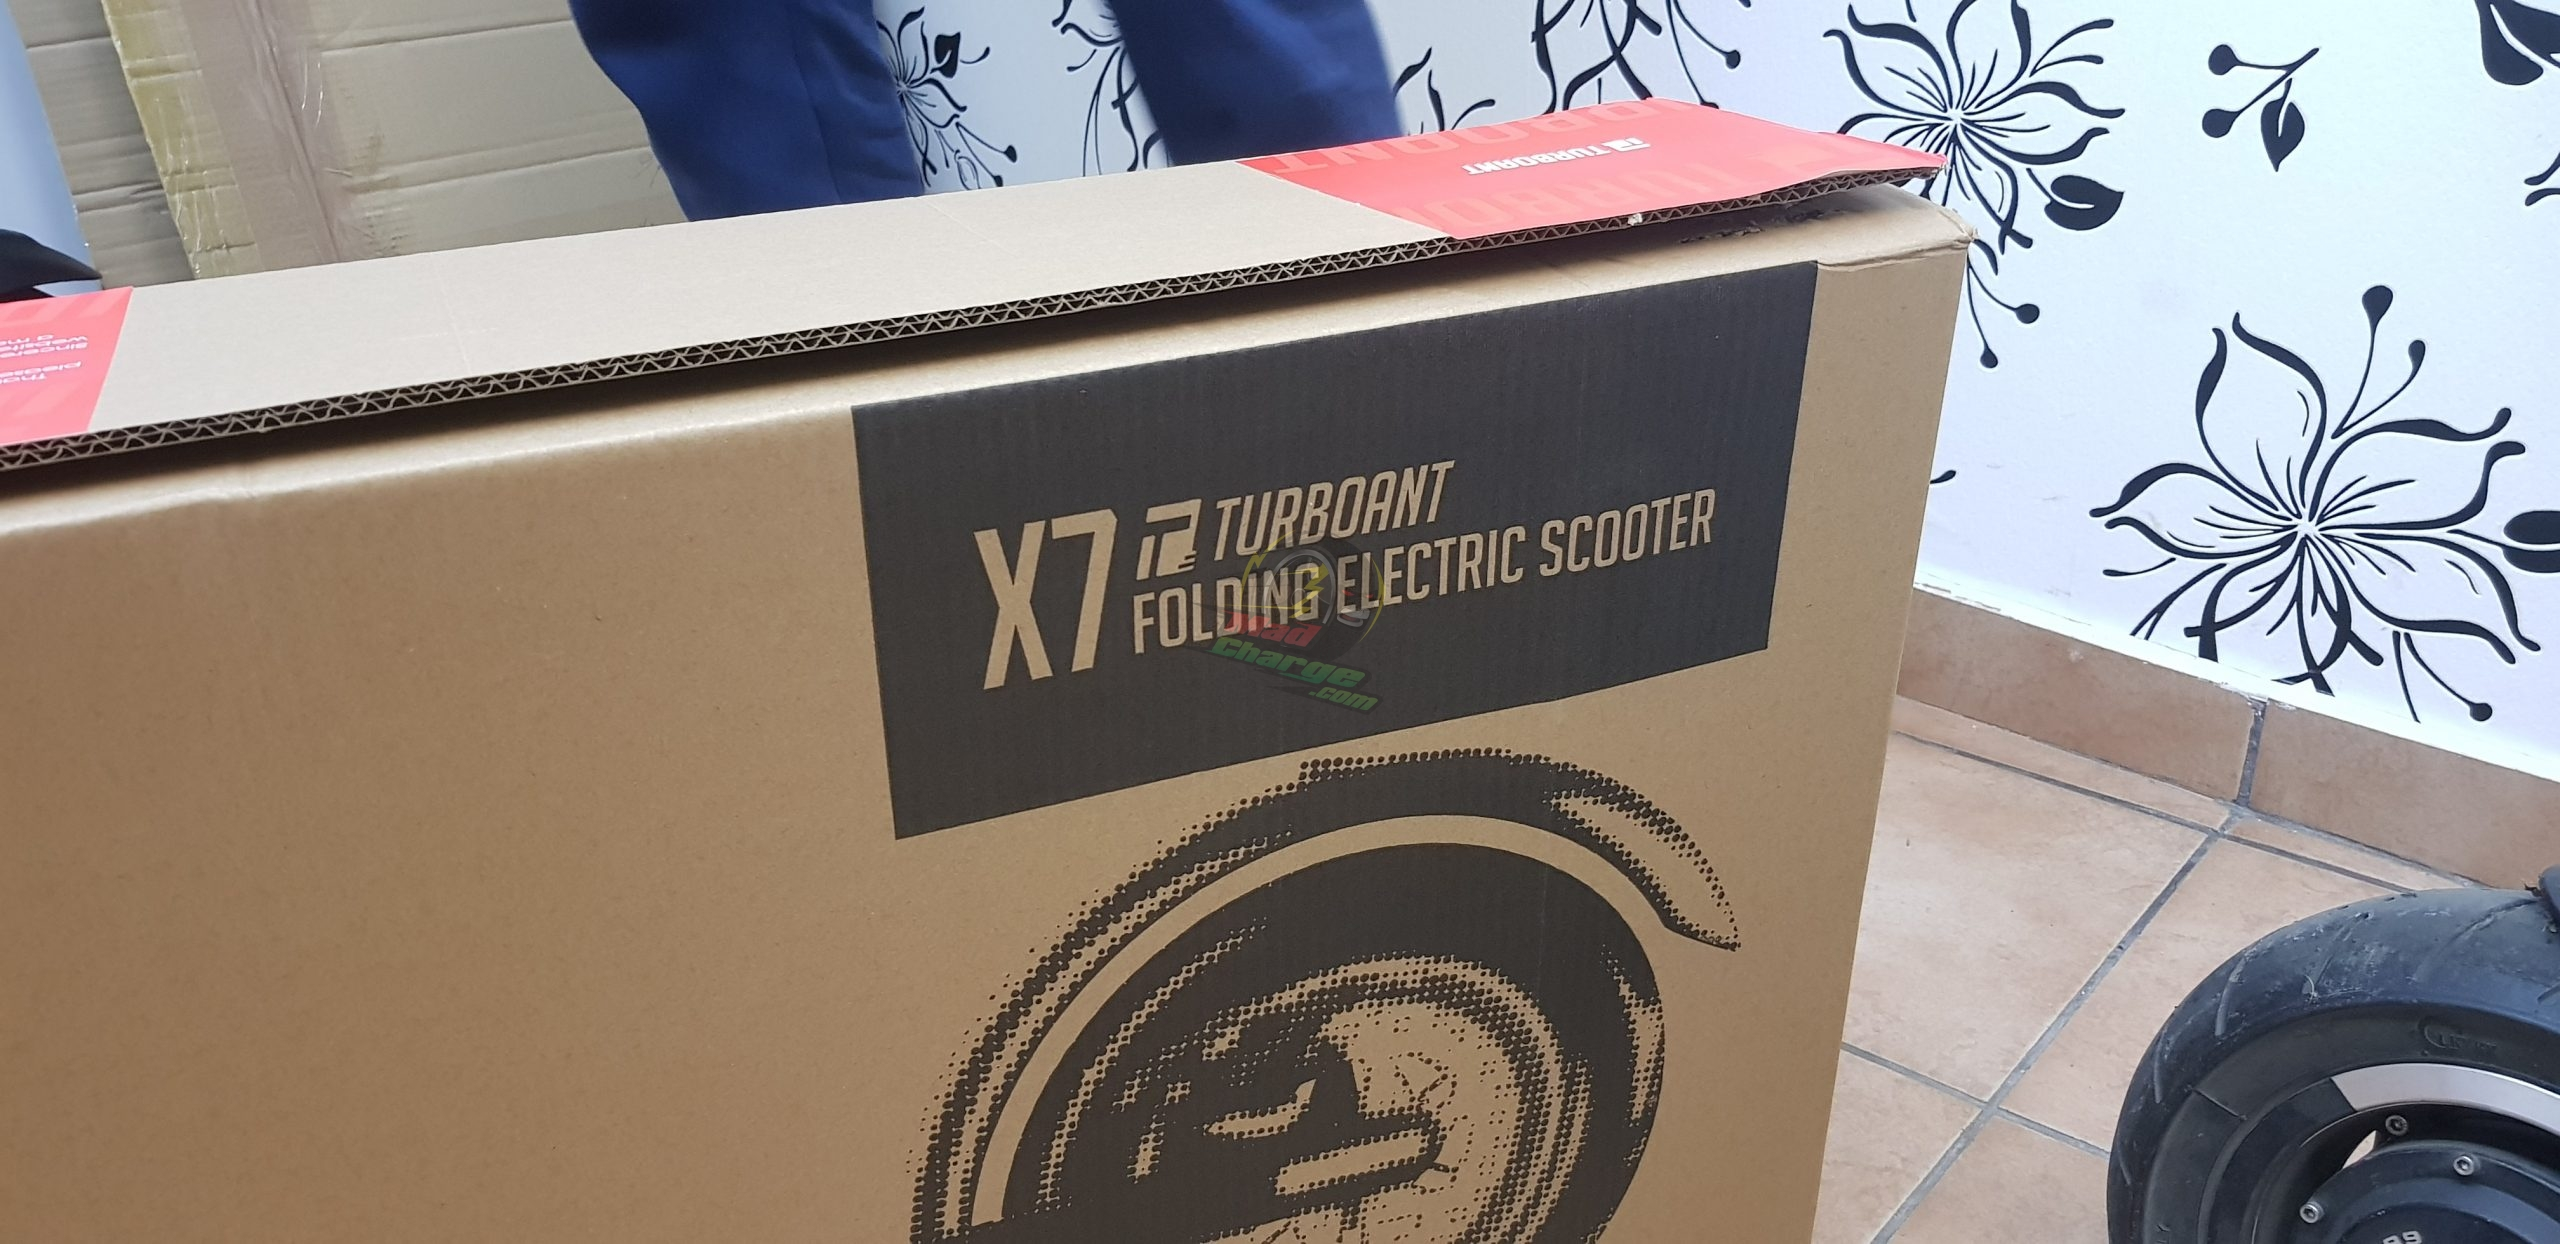 Turboant X7 Unboxing The Box 2 with logo